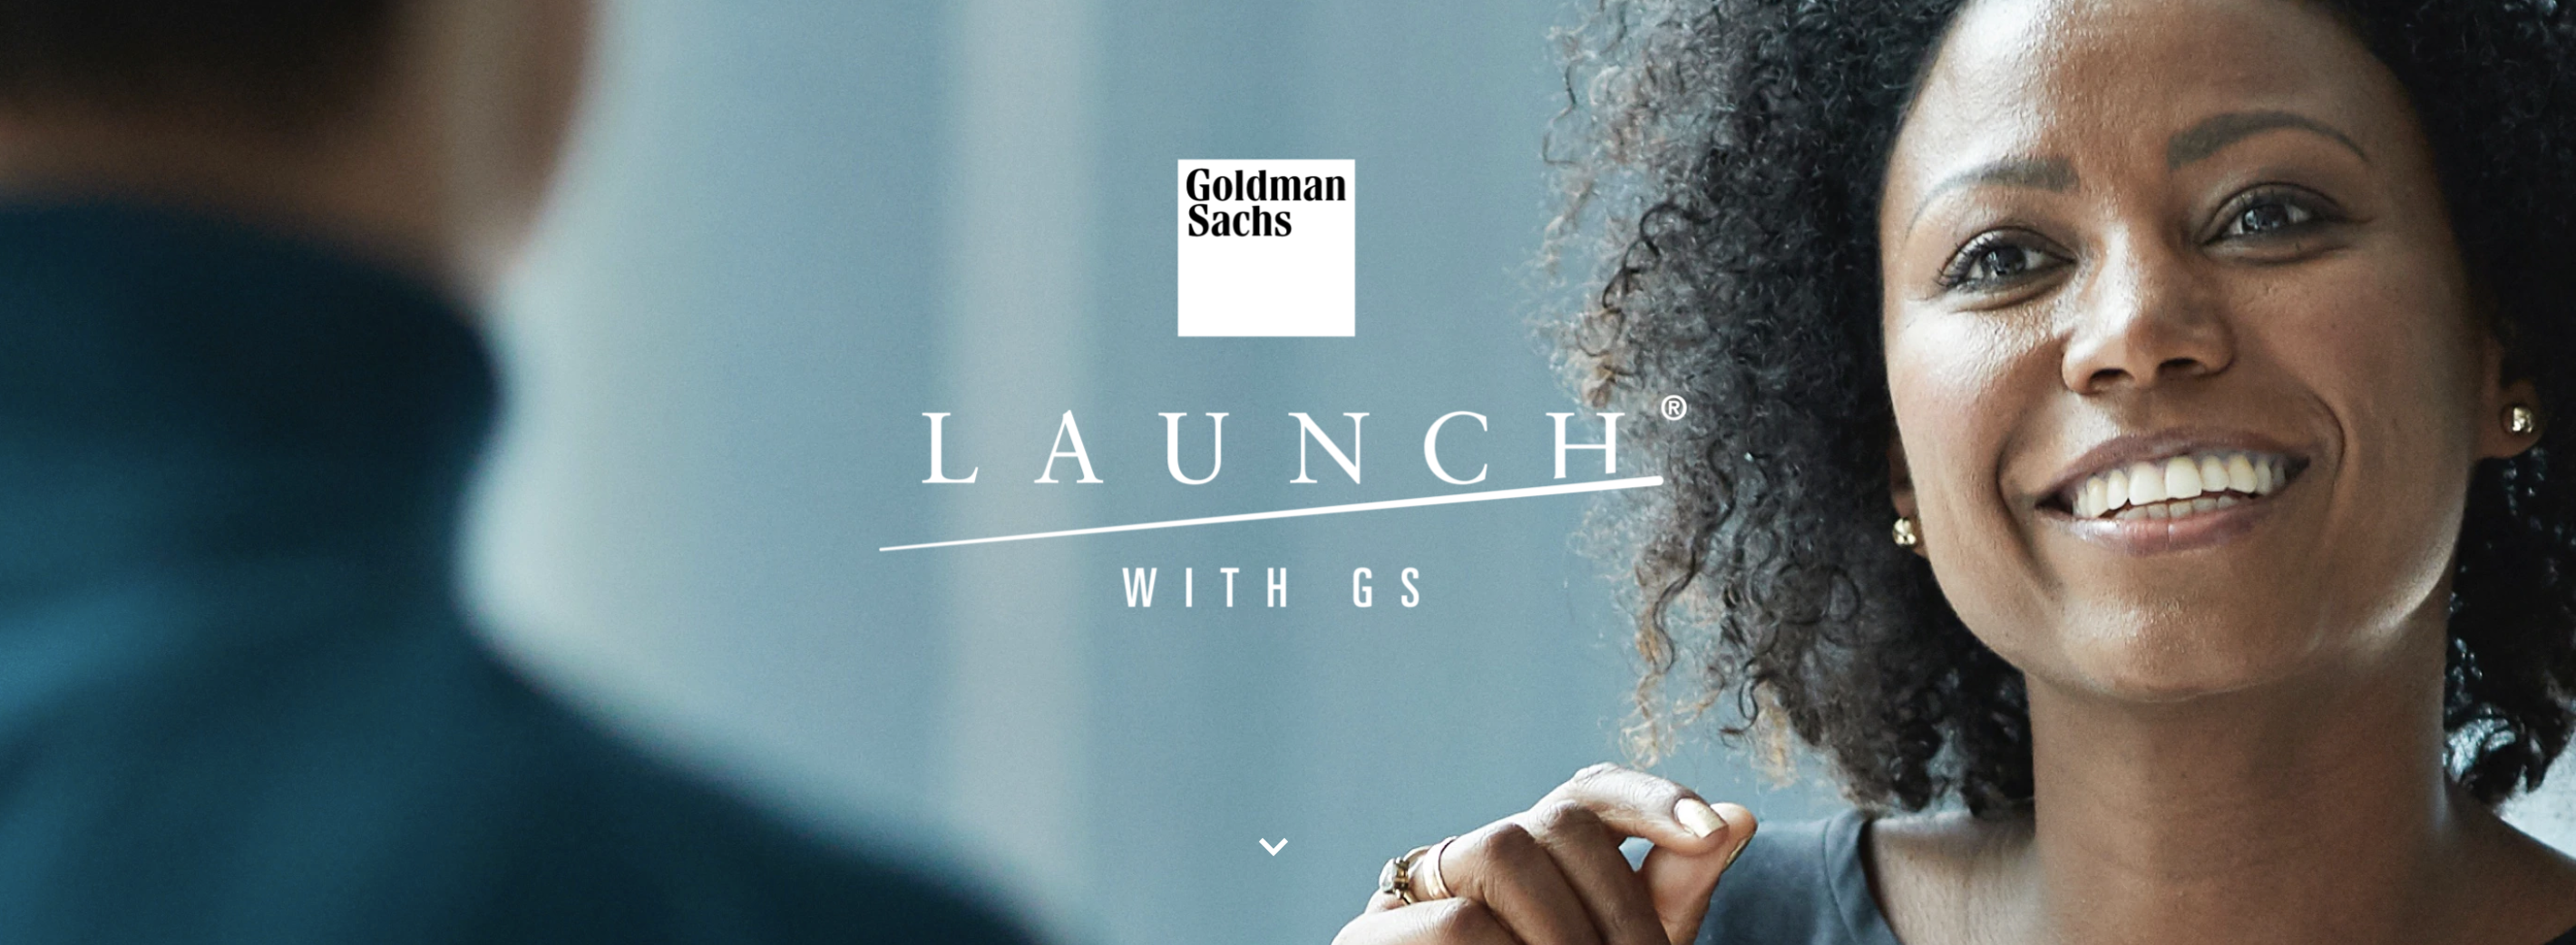 Goldman Sachs' Launch With GS Announces Investment in MaC Venture Capital I